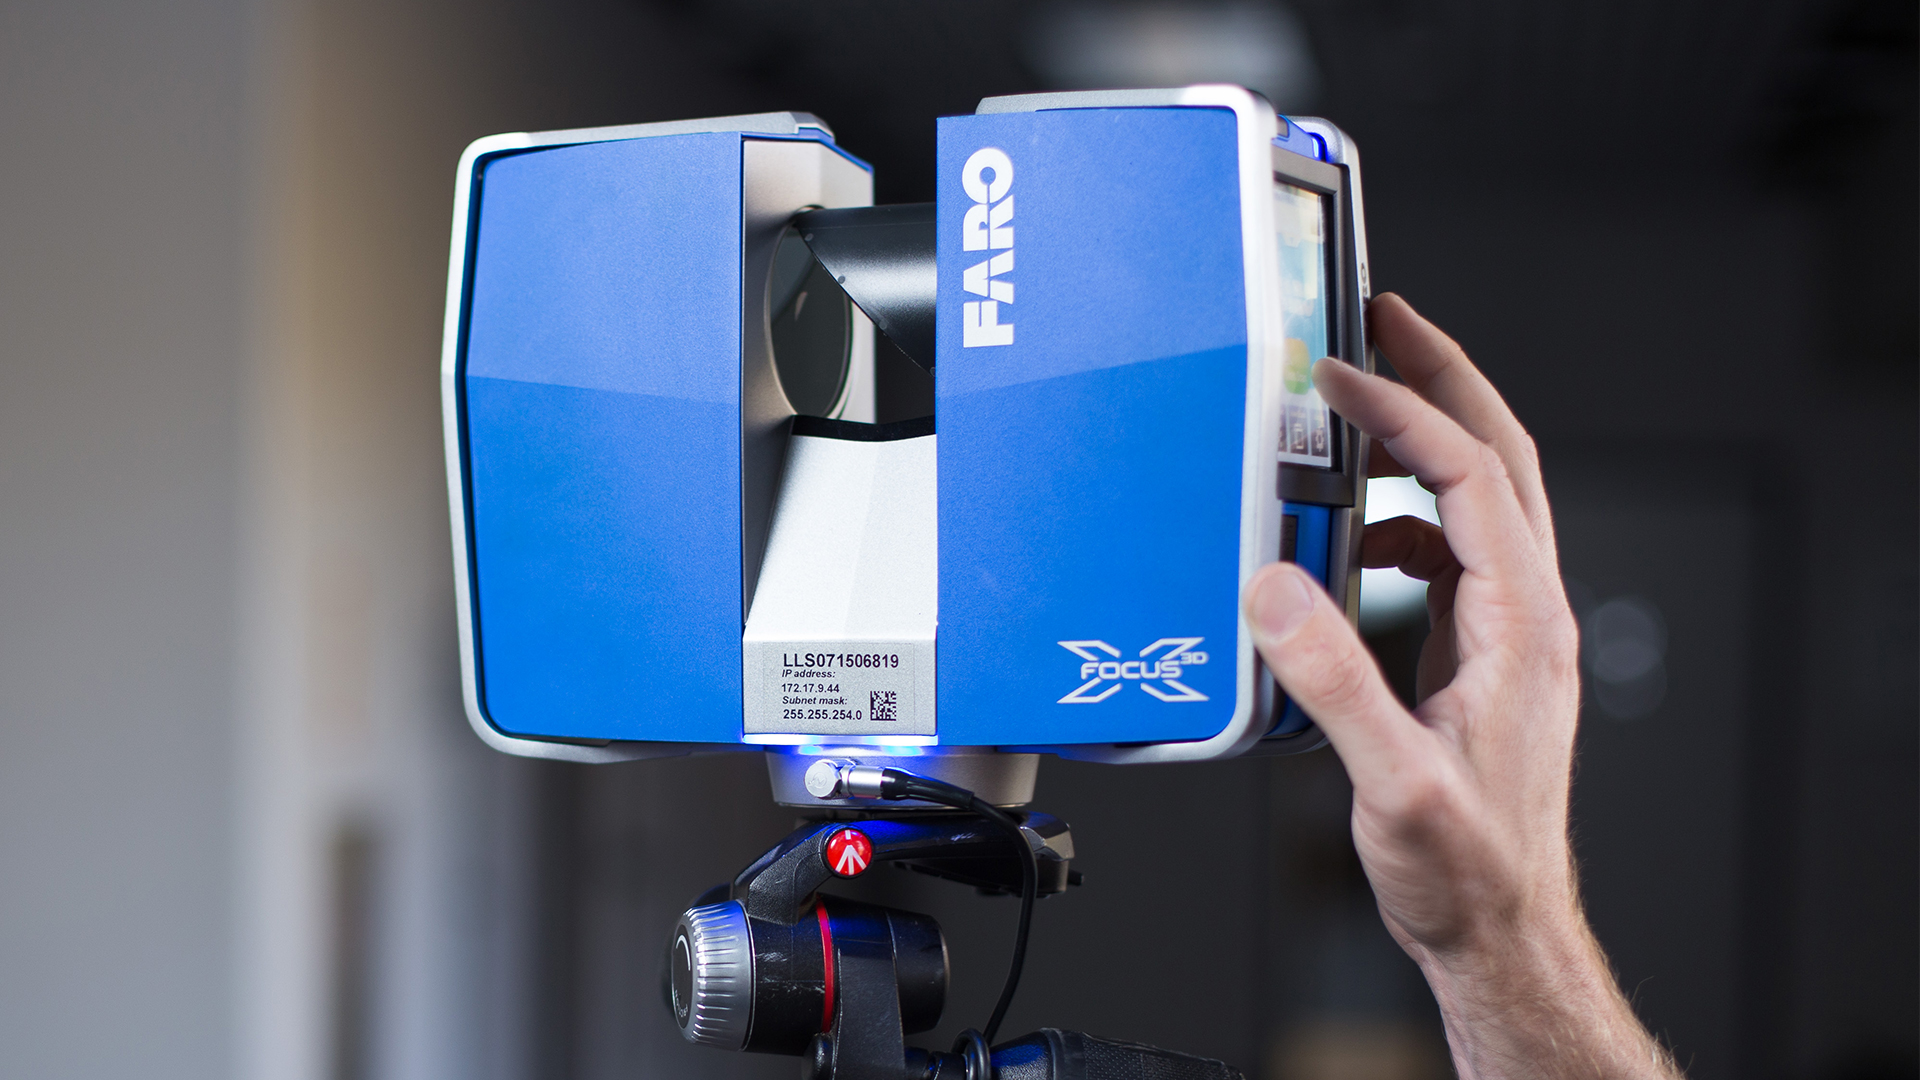 Learning FARO: Laser Scanning | LinkedIn Learning, formerly Lynda.com